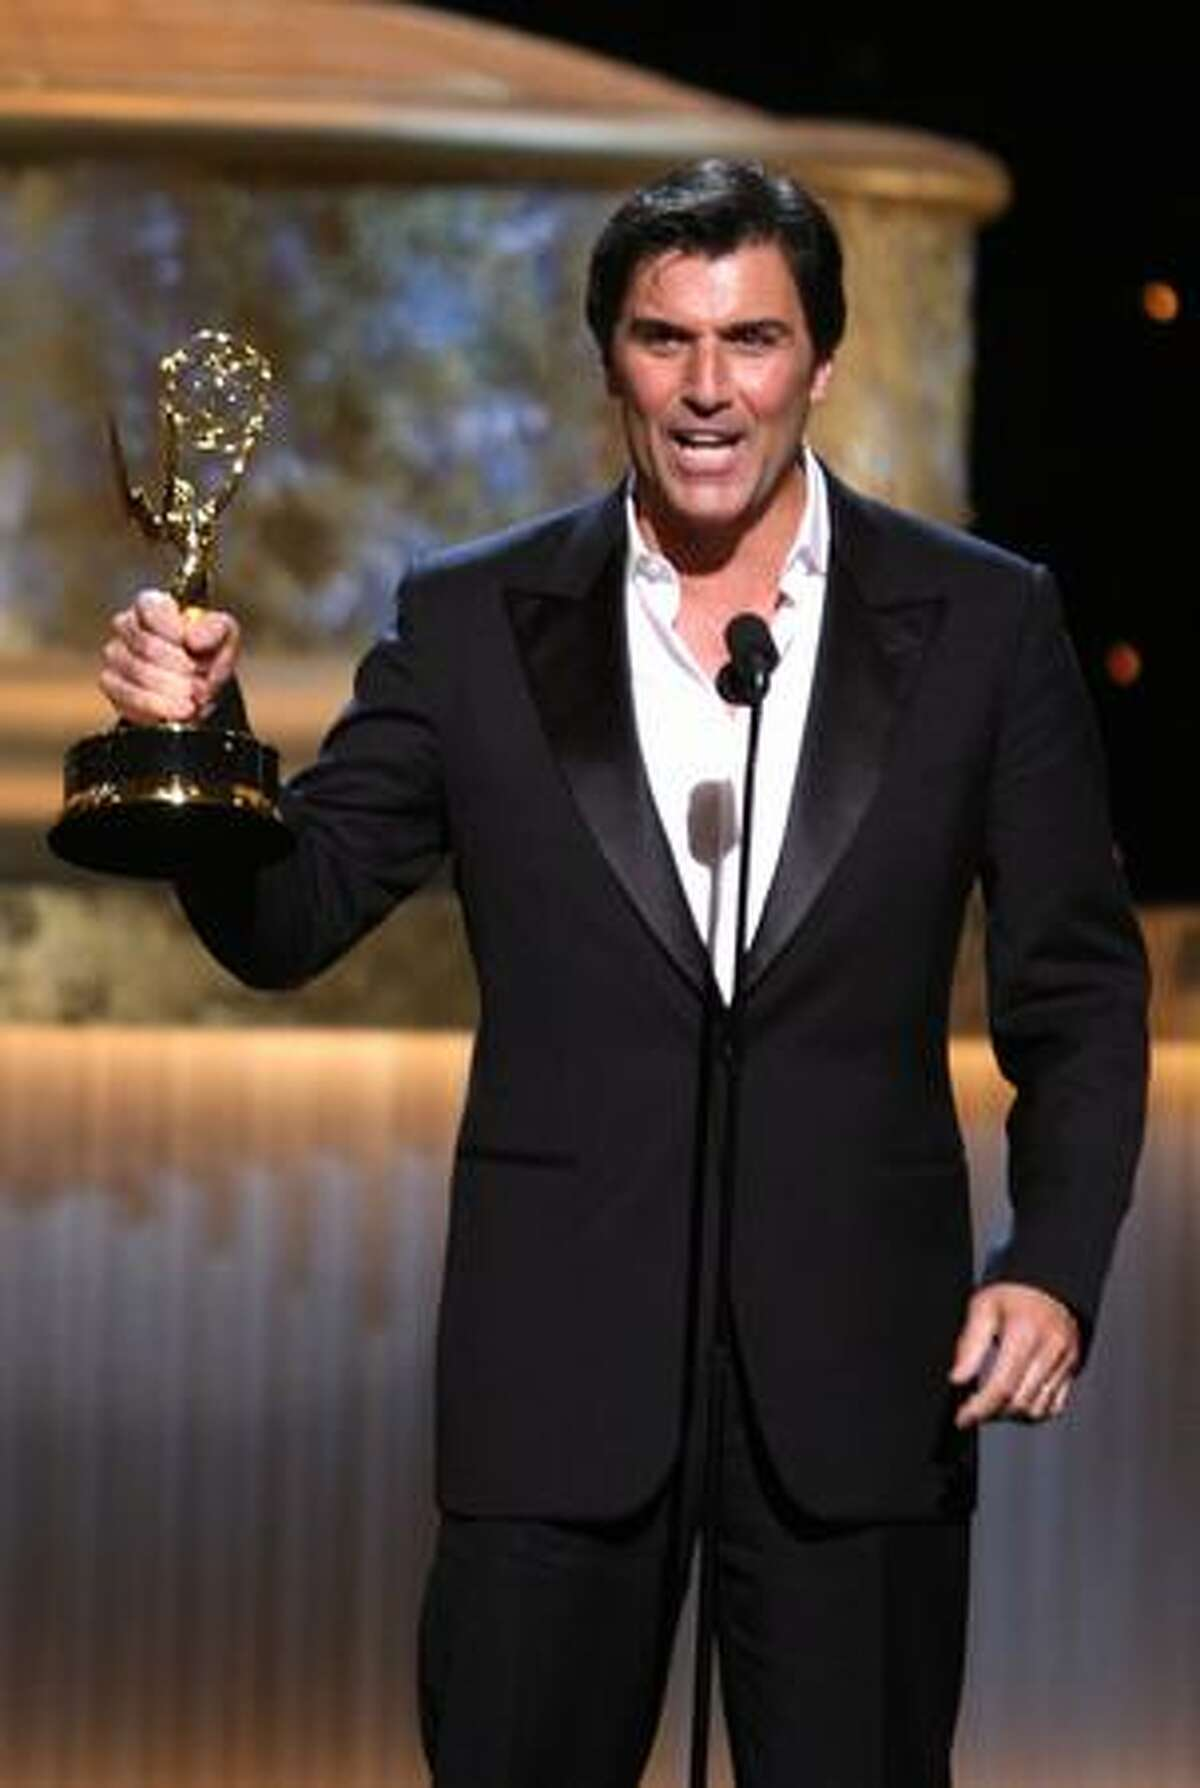 Actor Vincent Irizarry accepts the Emmy for Outstanding Supporting Actor in a Drama Series during the 36th Annual Daytime Emmy Awards at The Orpheum Theatre on Sunday in Los Angeles, Calif.